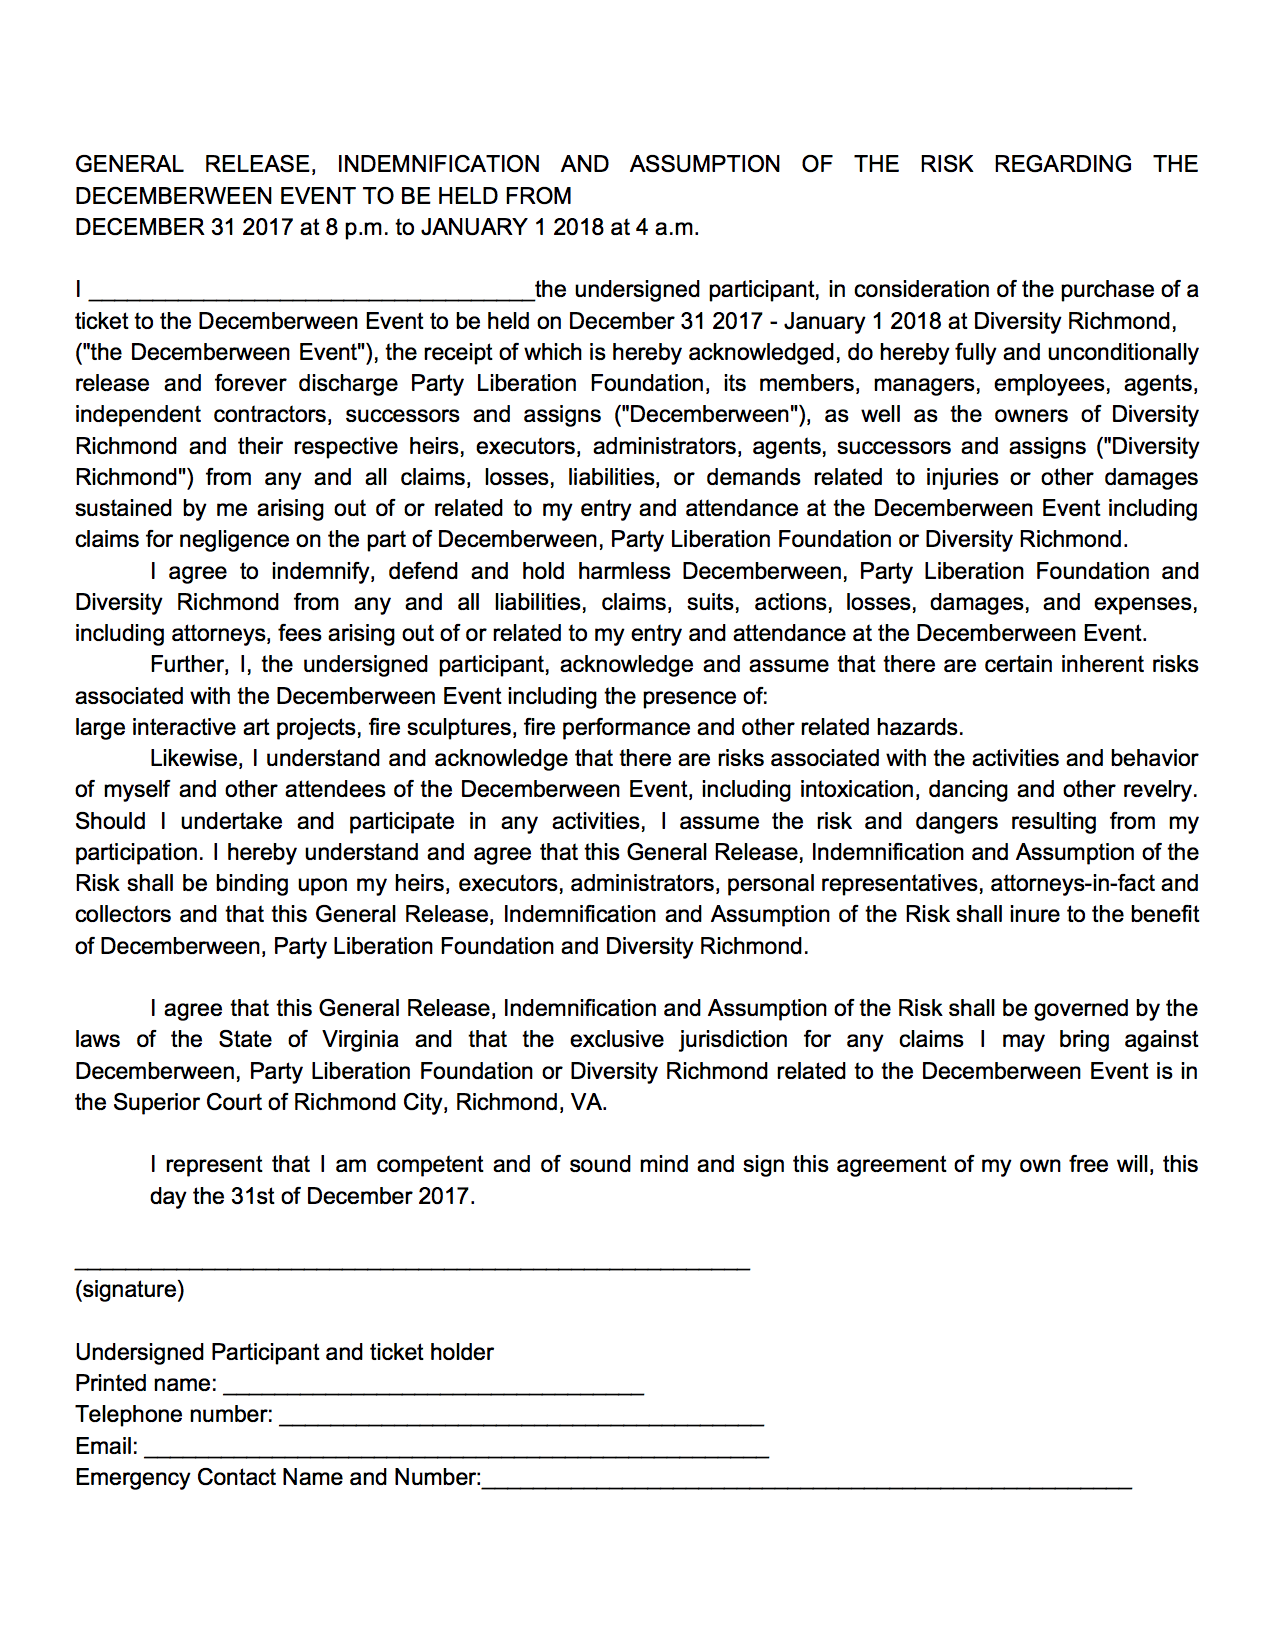 Dween 12 Waiver